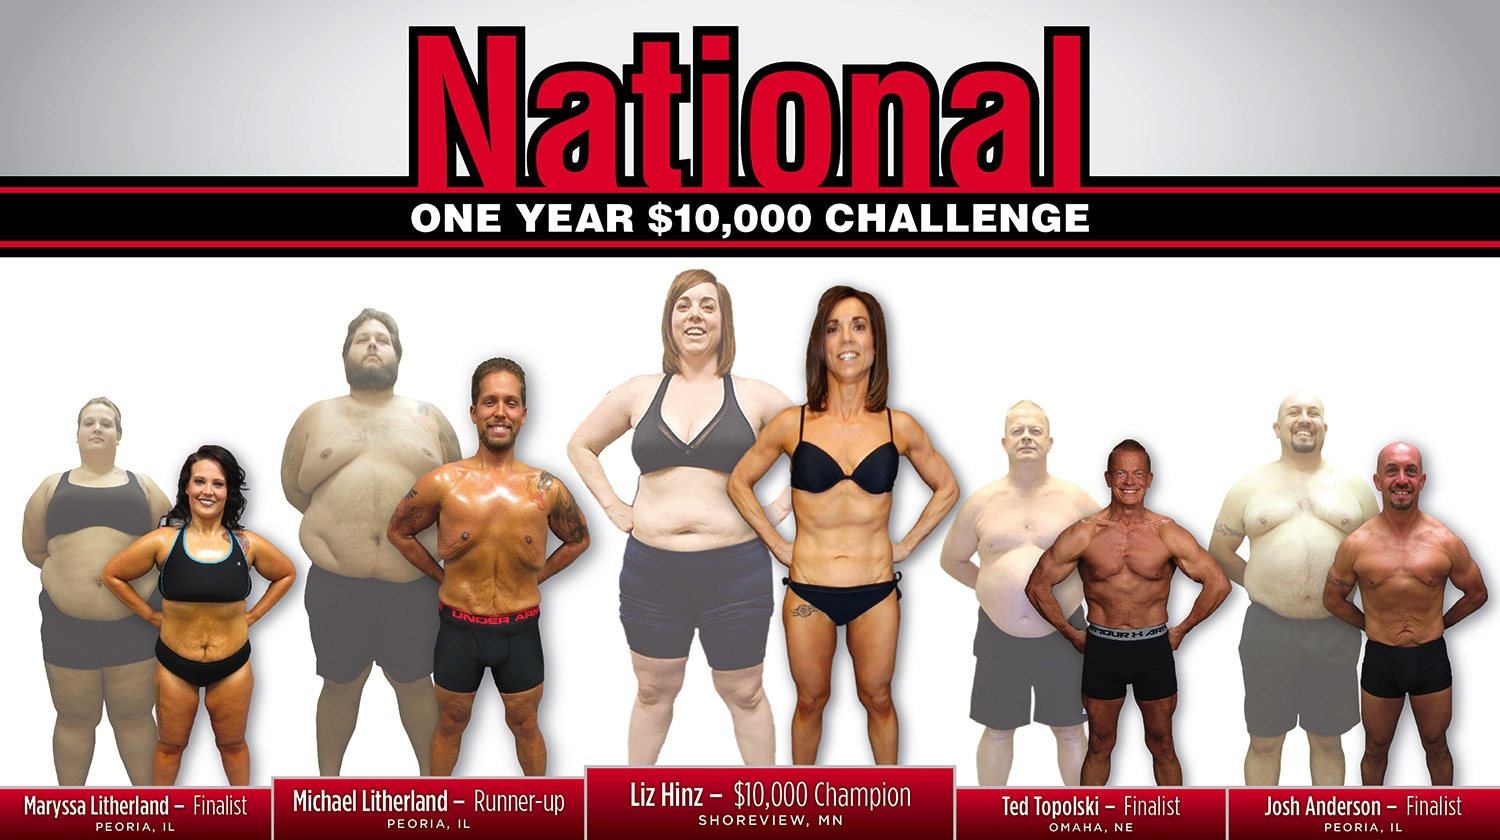 Farrell's eXtreme Bodyshaping $10,000 National Contest